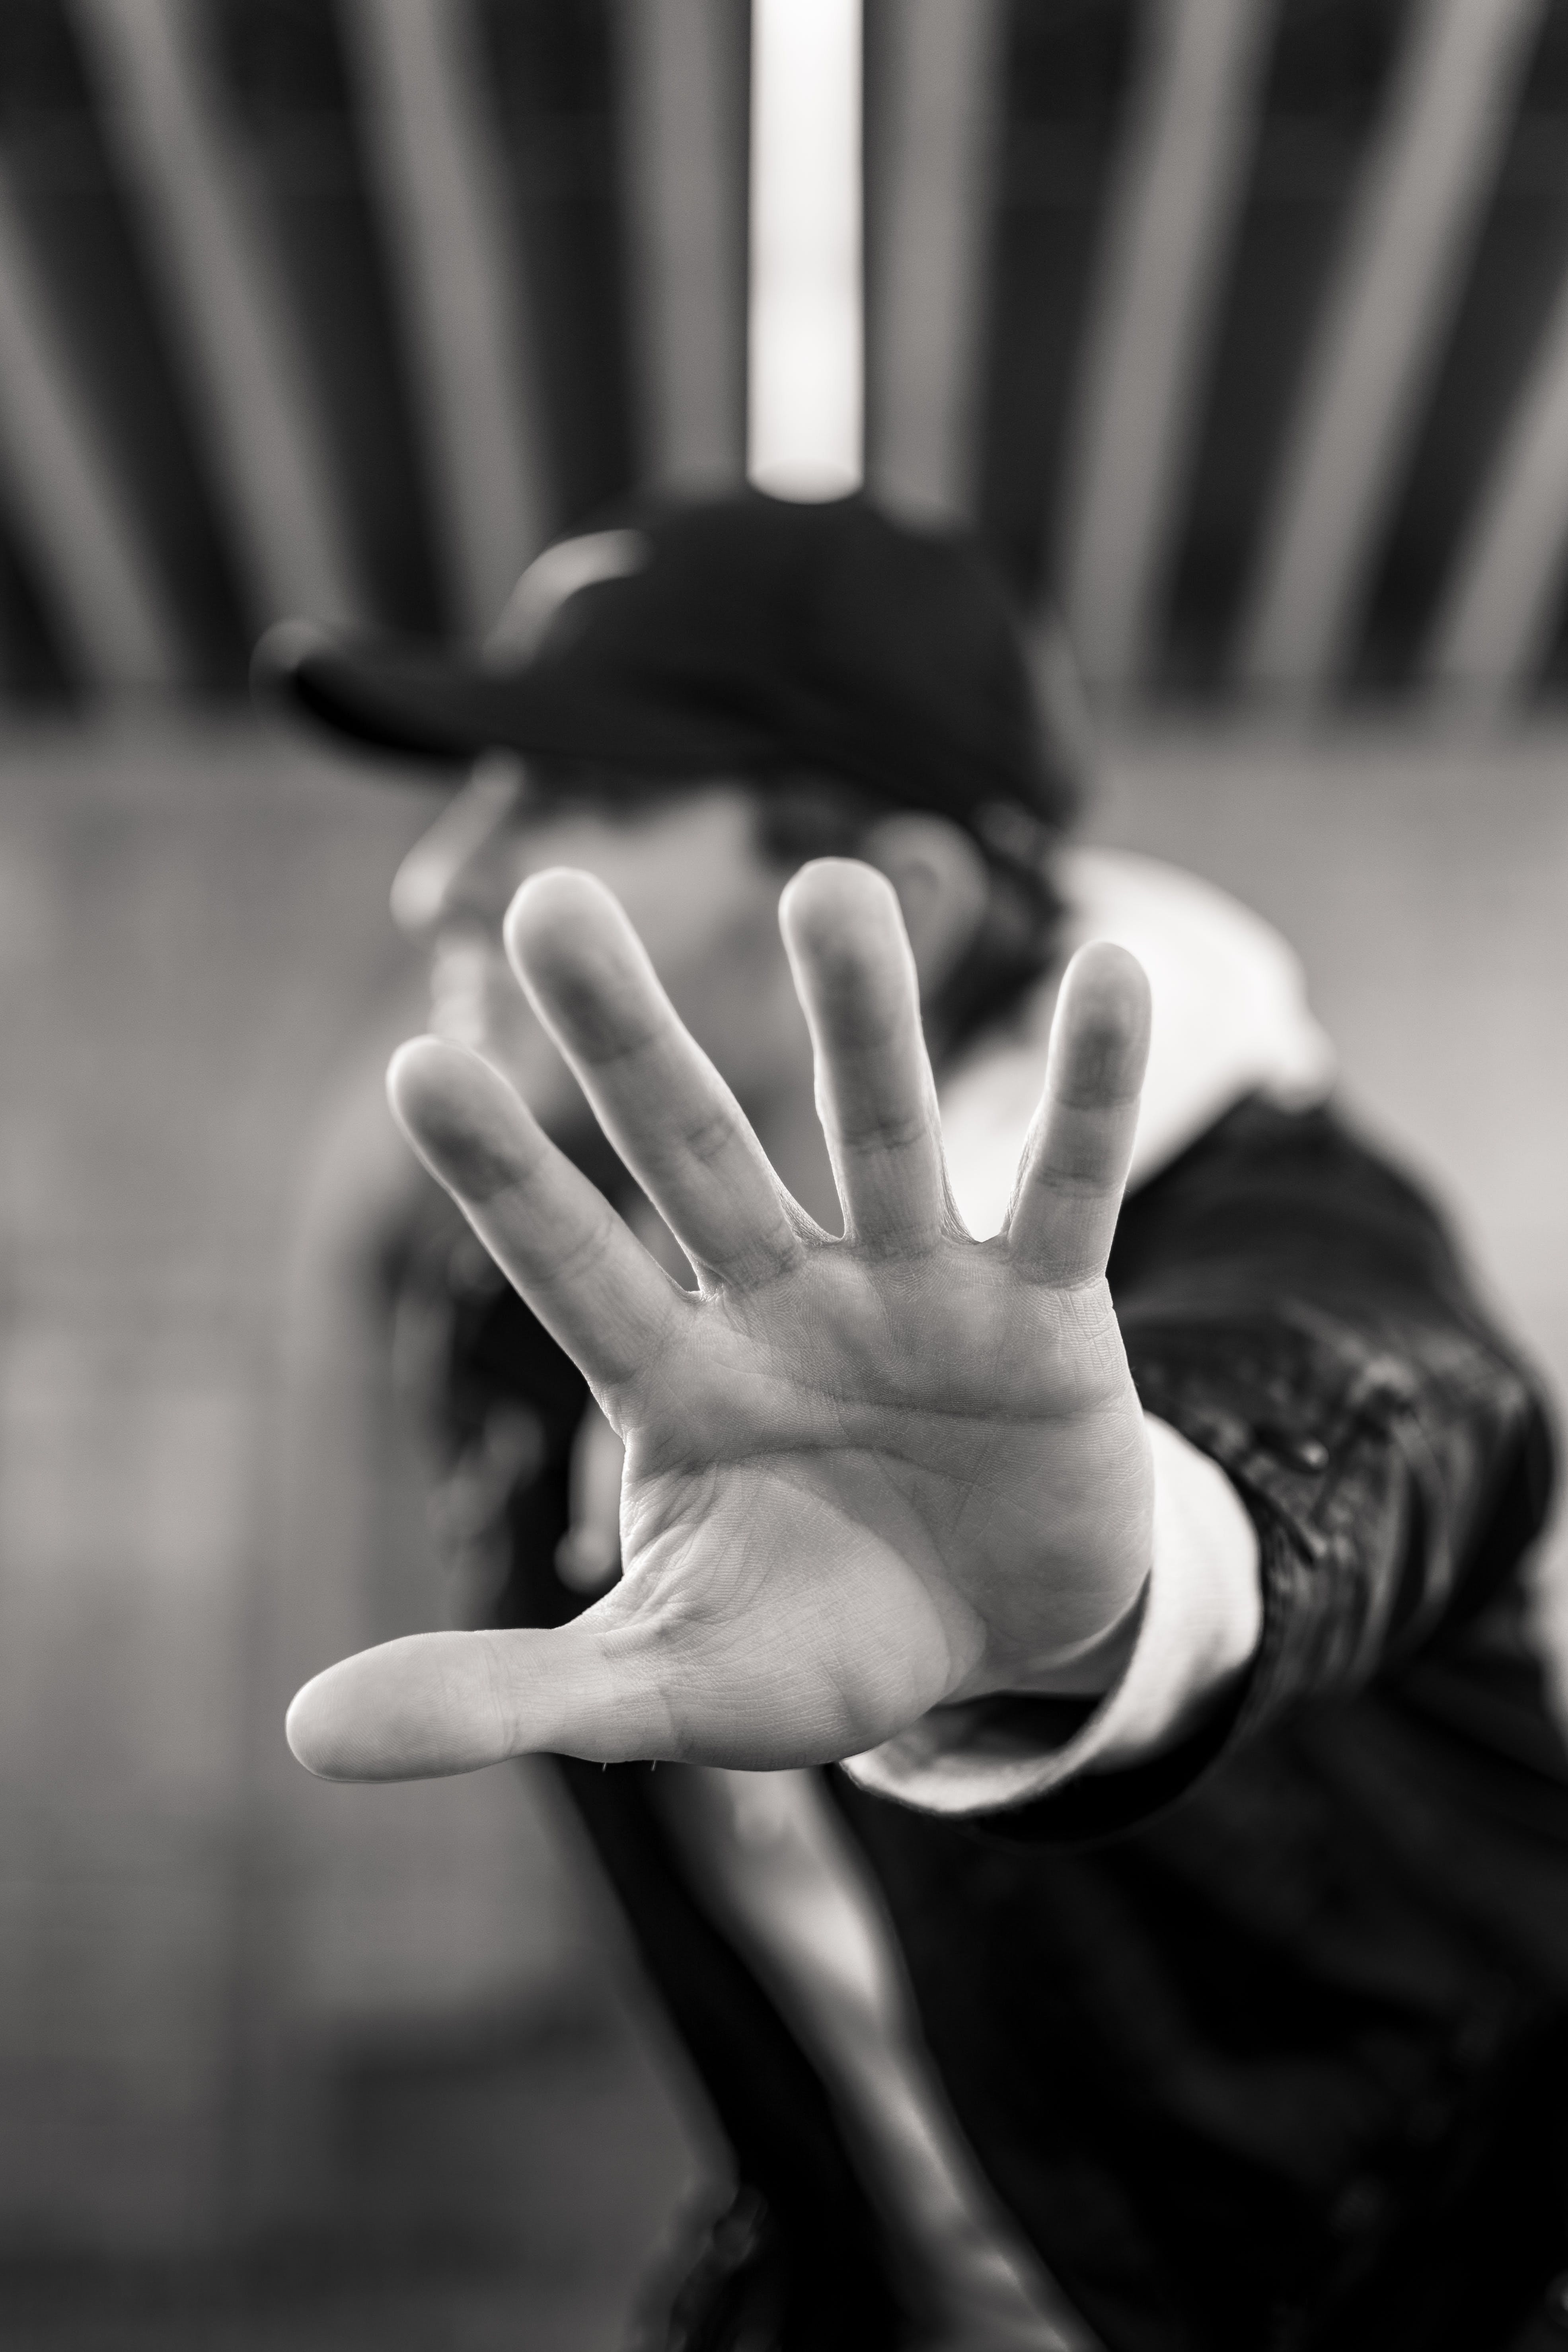 Monochrome Photo of Man Showing His Left Hand